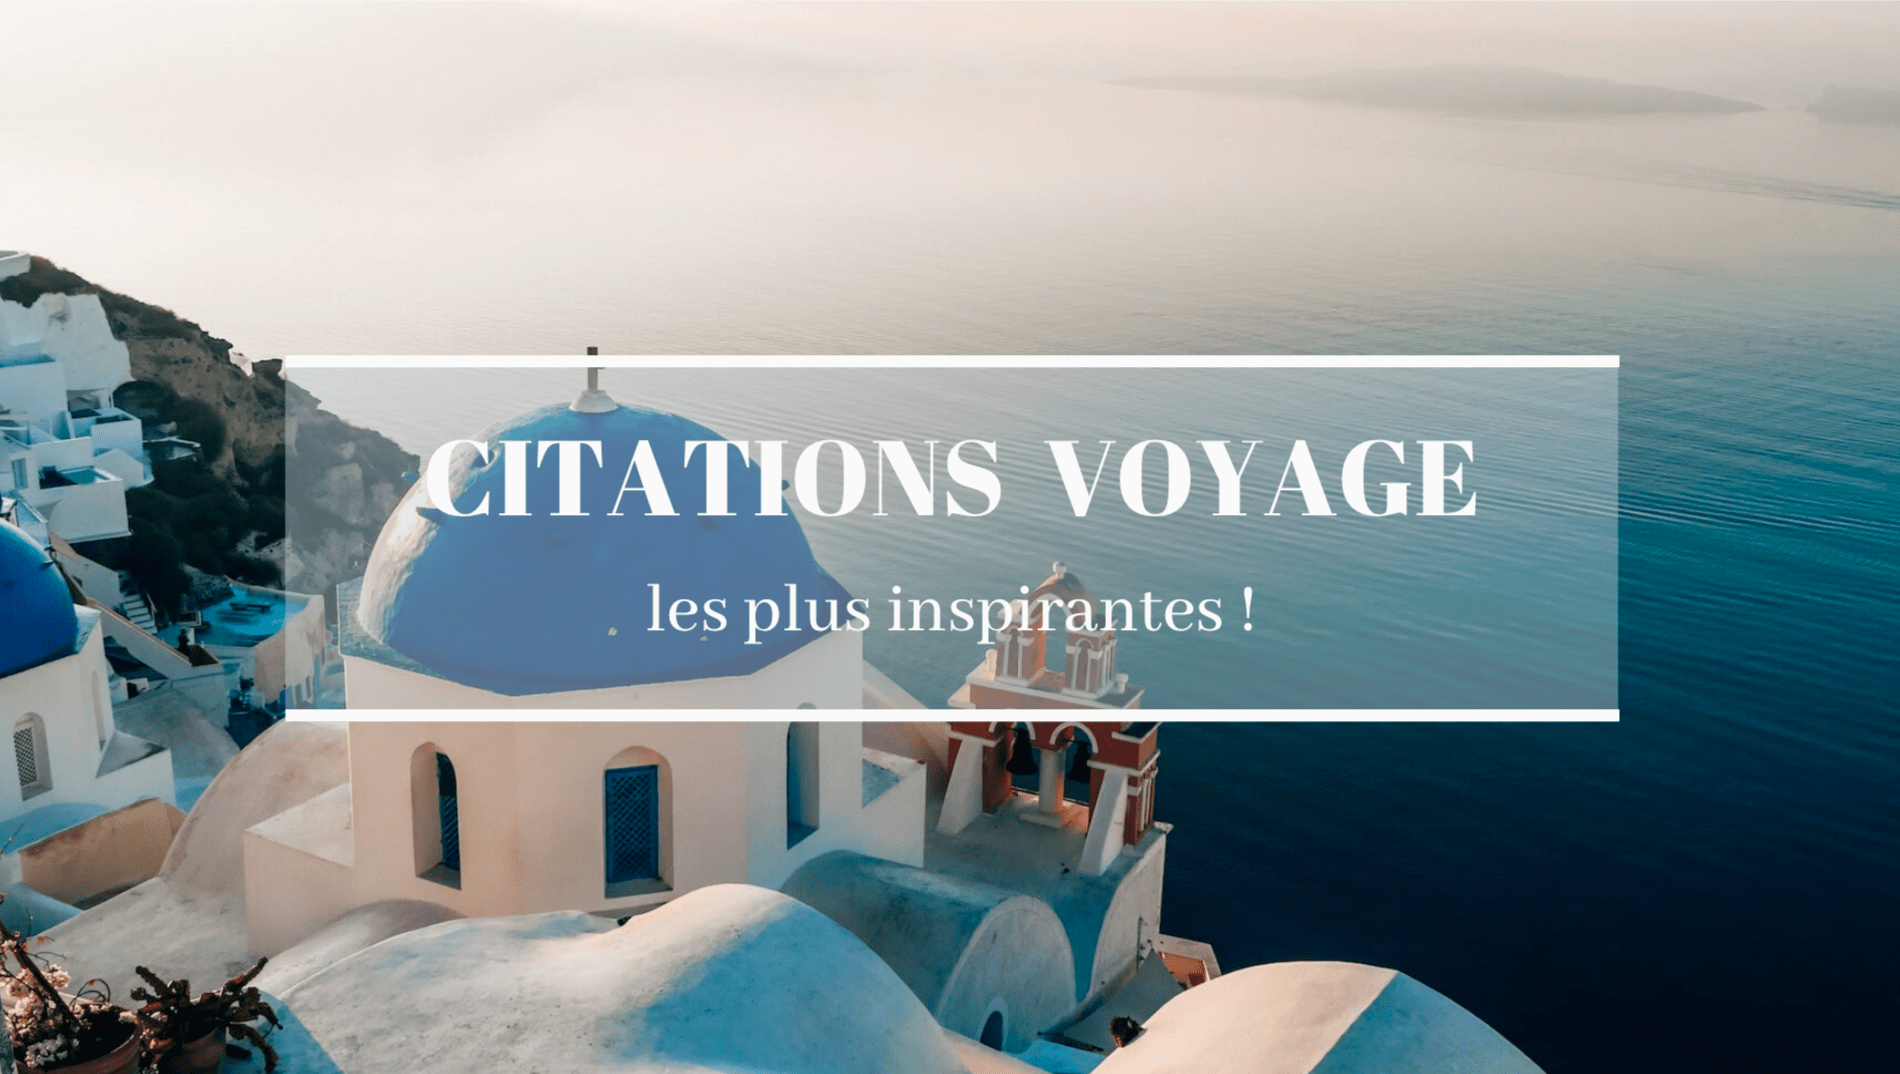 Citations voyage